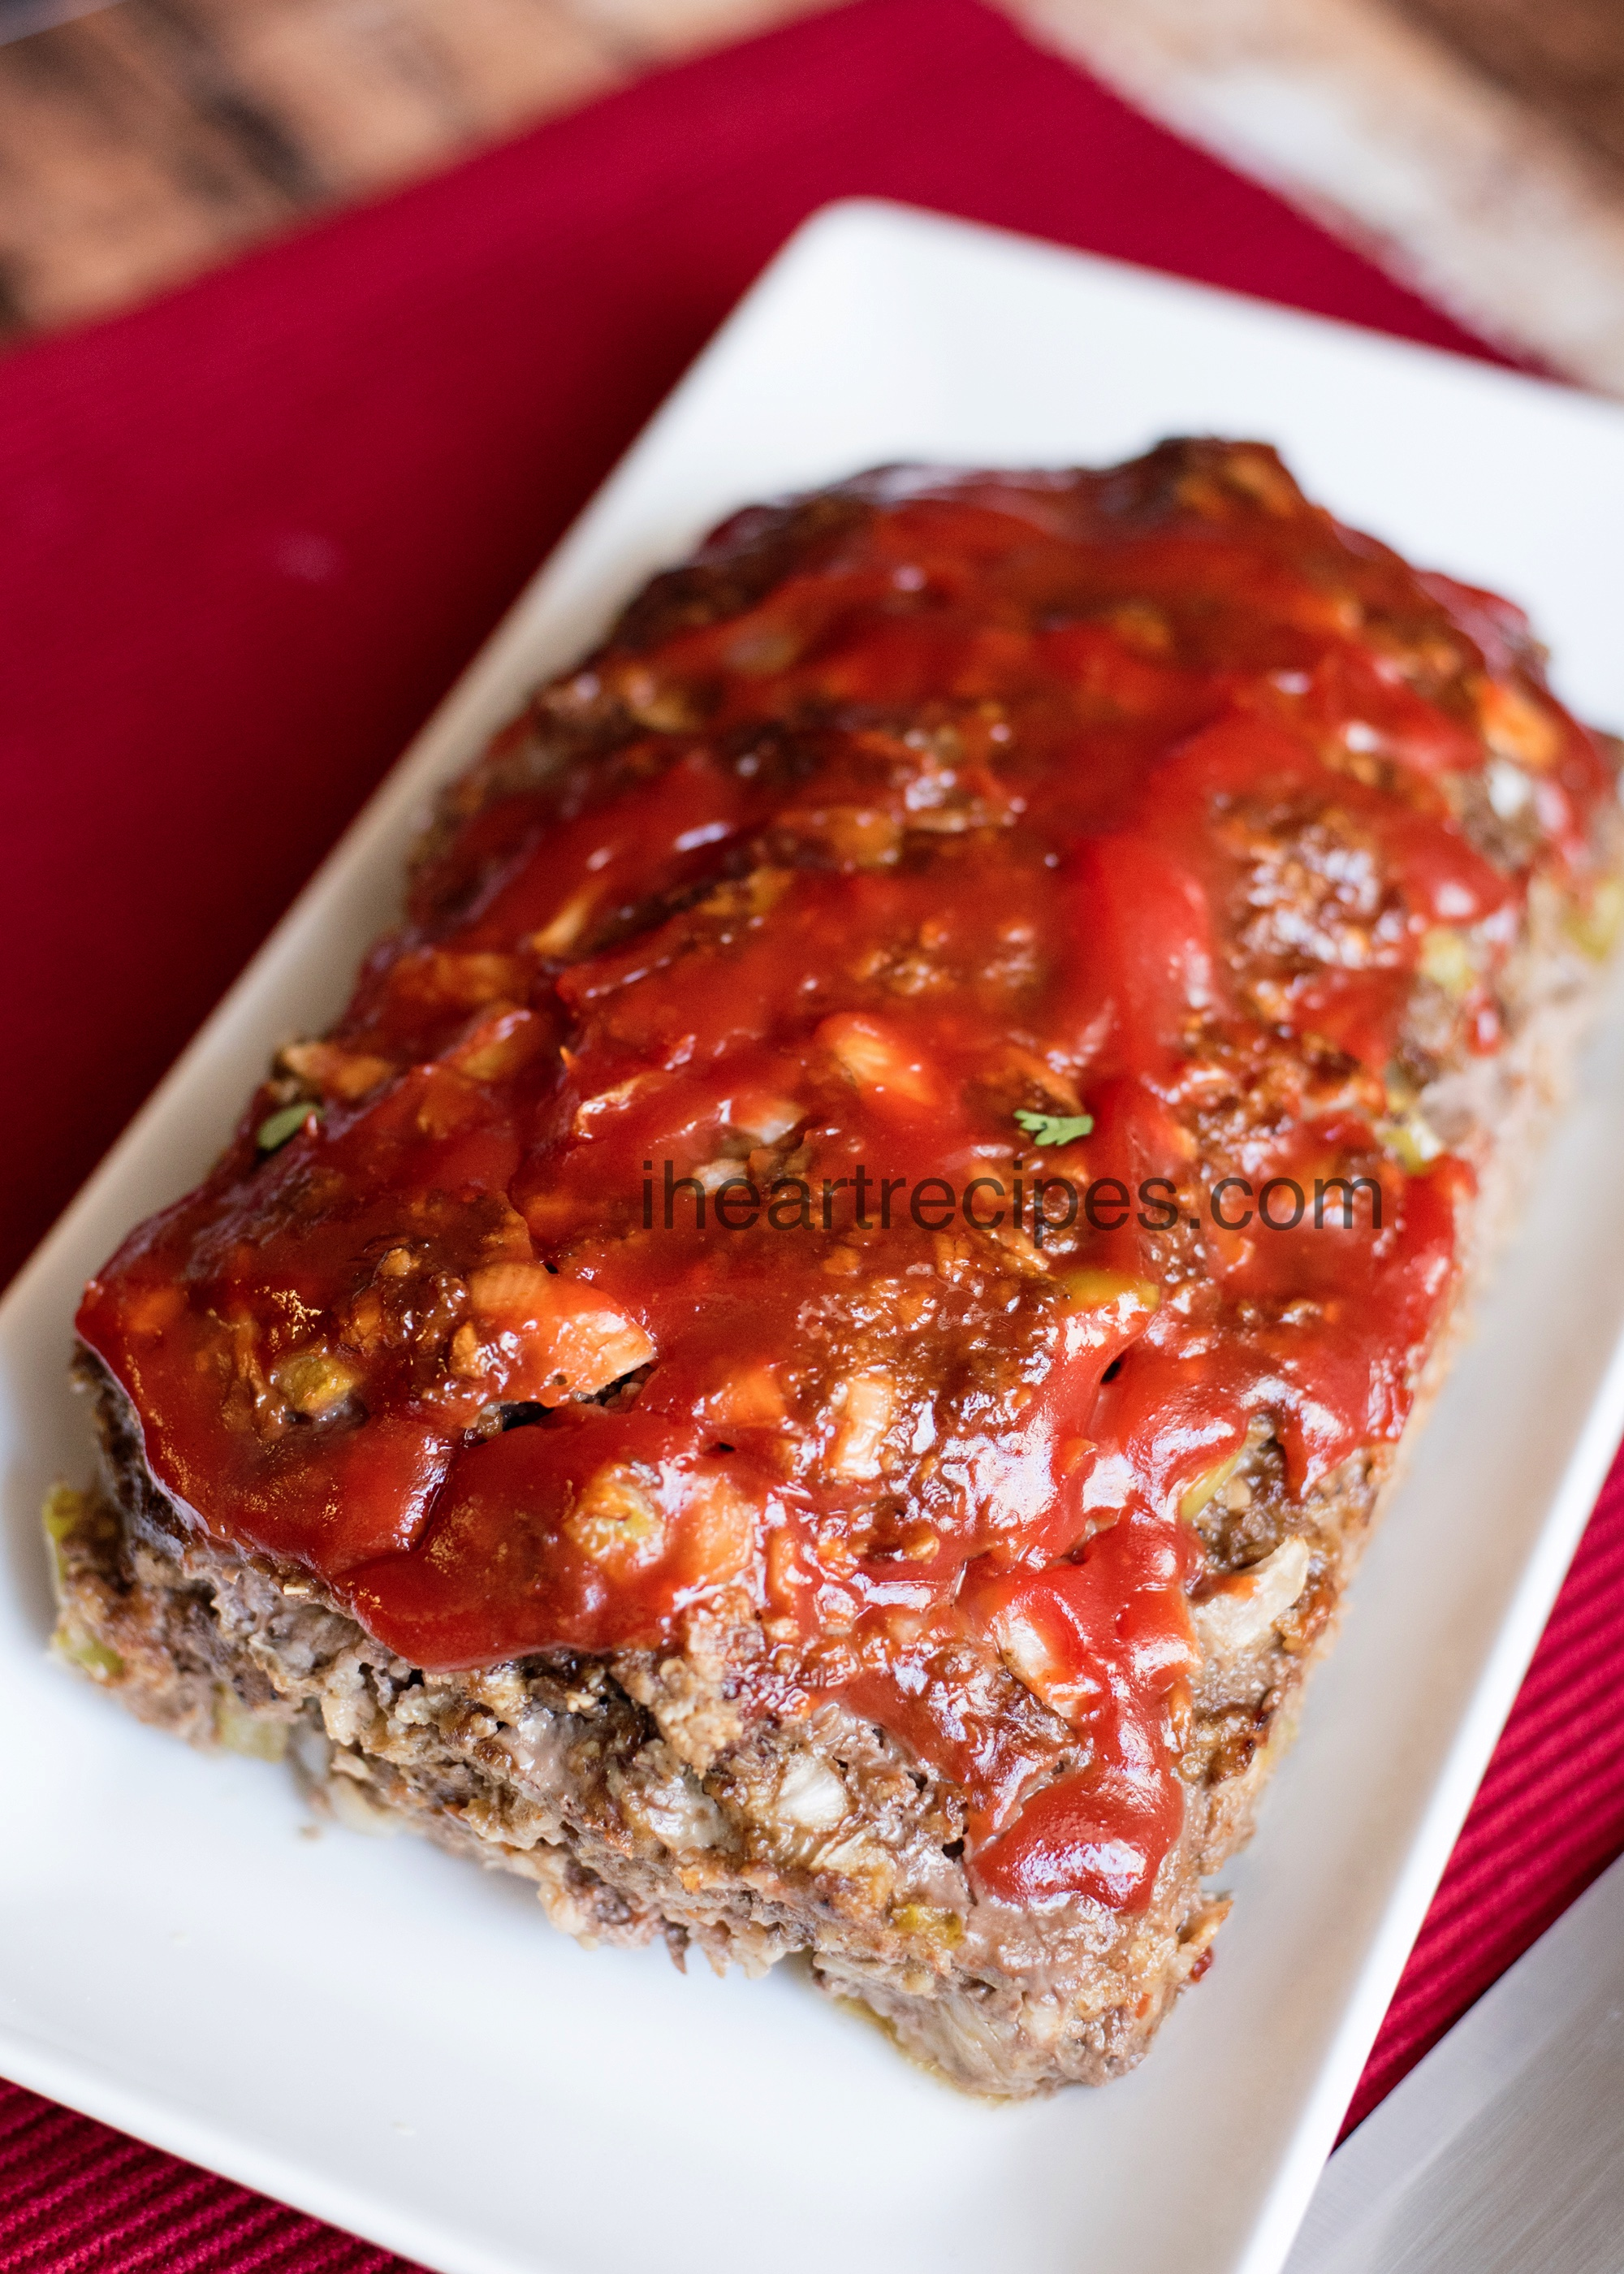 Classic Meatloaf Recipe | I Heart Recipes